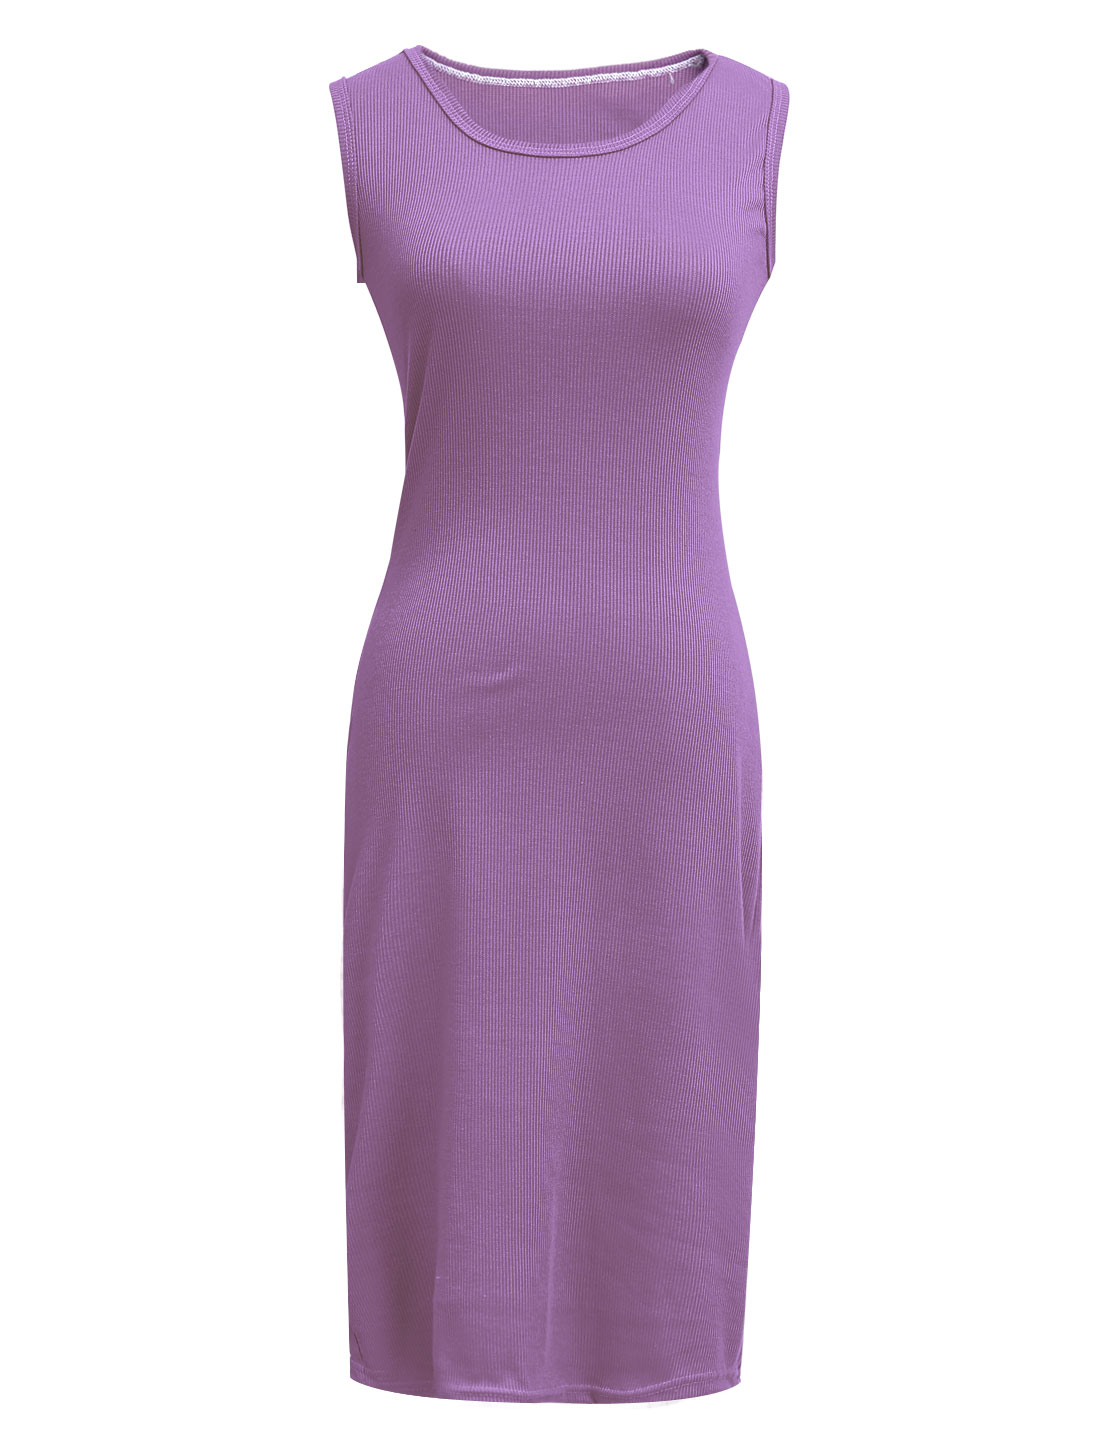 Woman Round Neck Design Stretchy Sheath Knitted Dress Purple XS